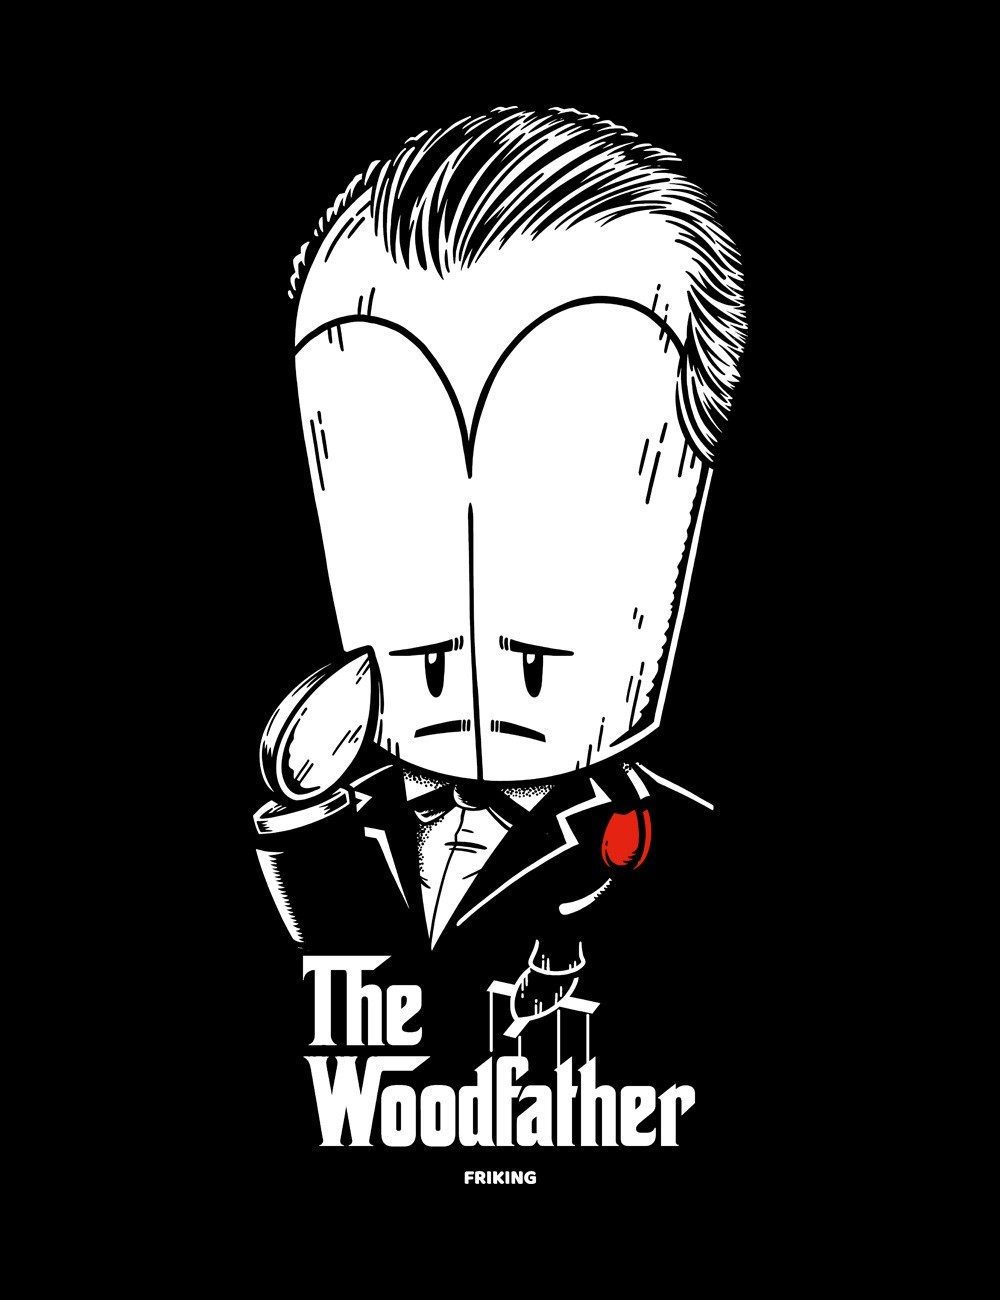 The Woodfather